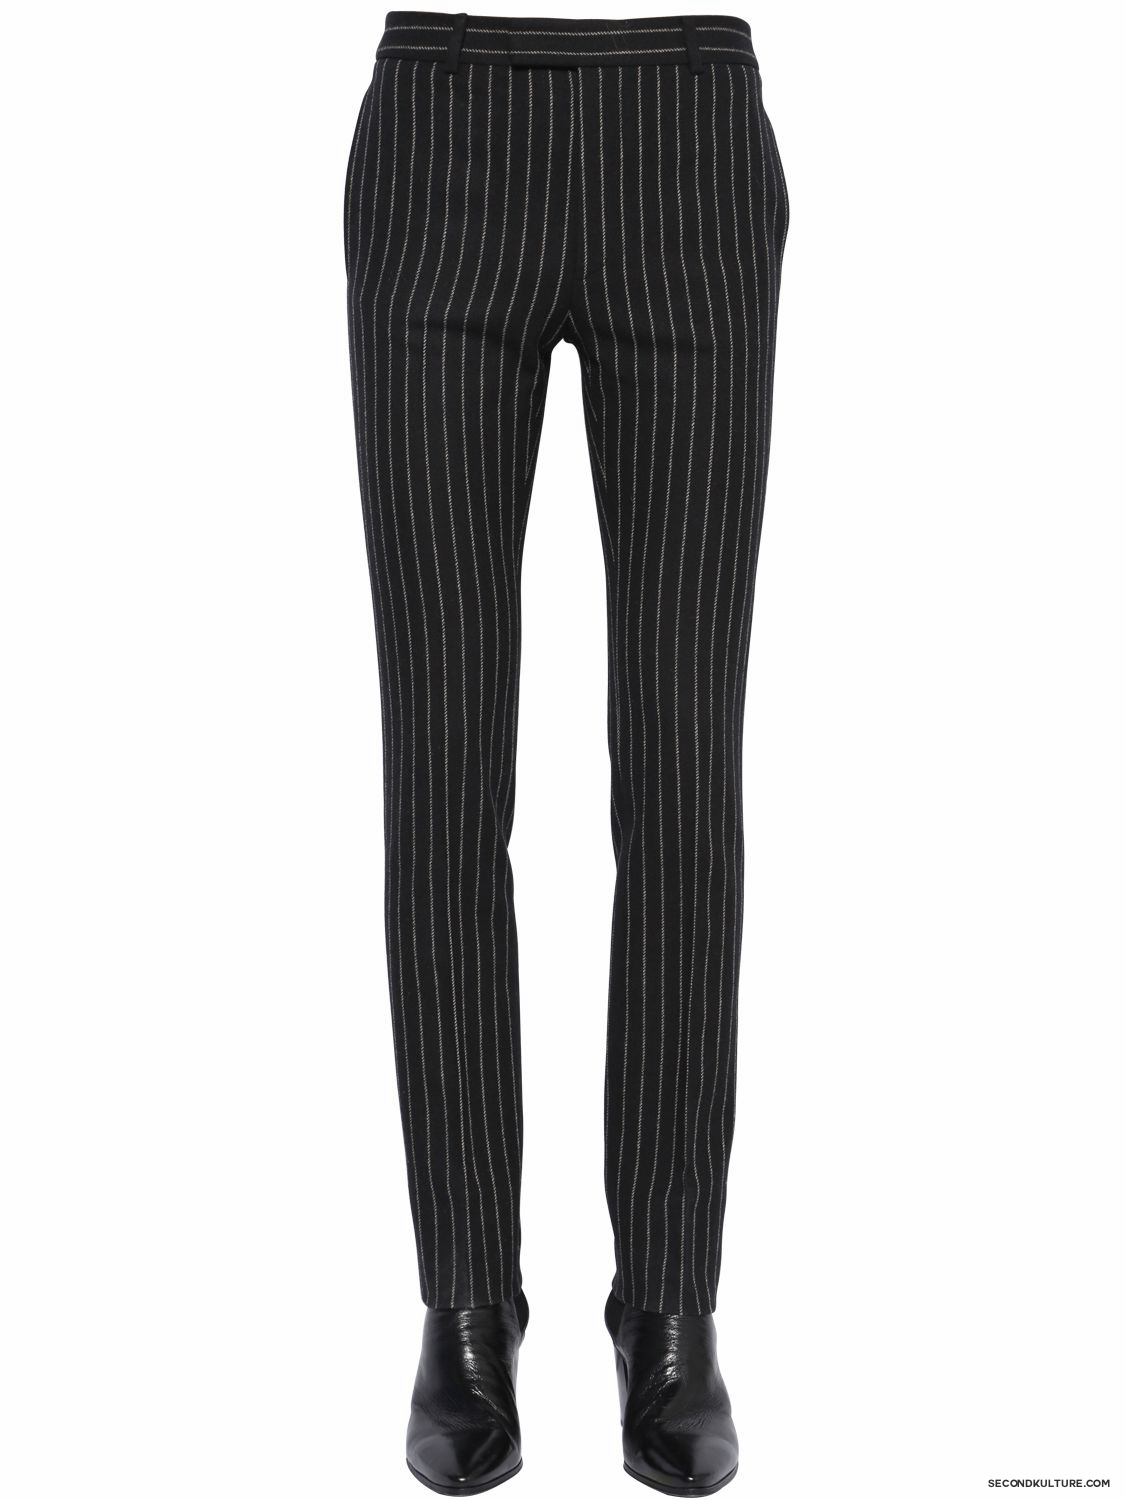 Saint-Laurent-17cm-Black-Contrast-Striped-Wool-Flannel-Trousers-Fall-Winter-2015-1